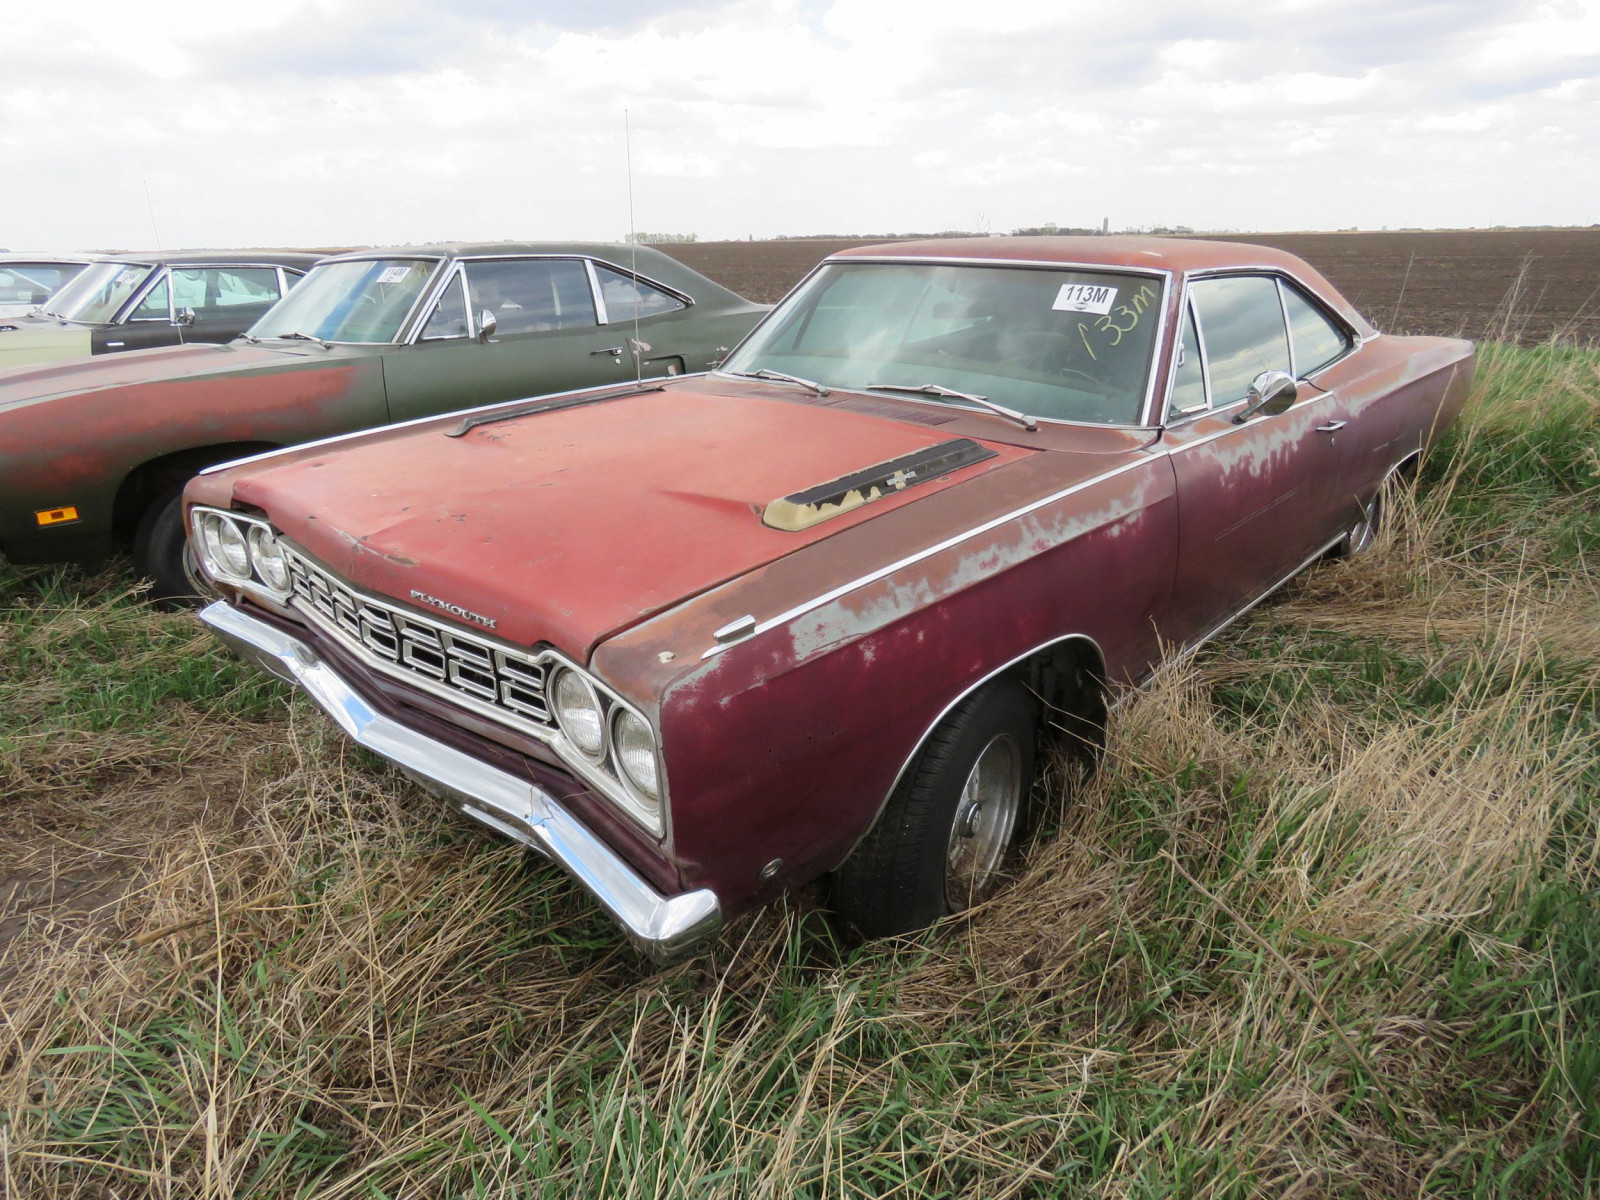 1968 Plymouth Satellite Coupe - Image 1